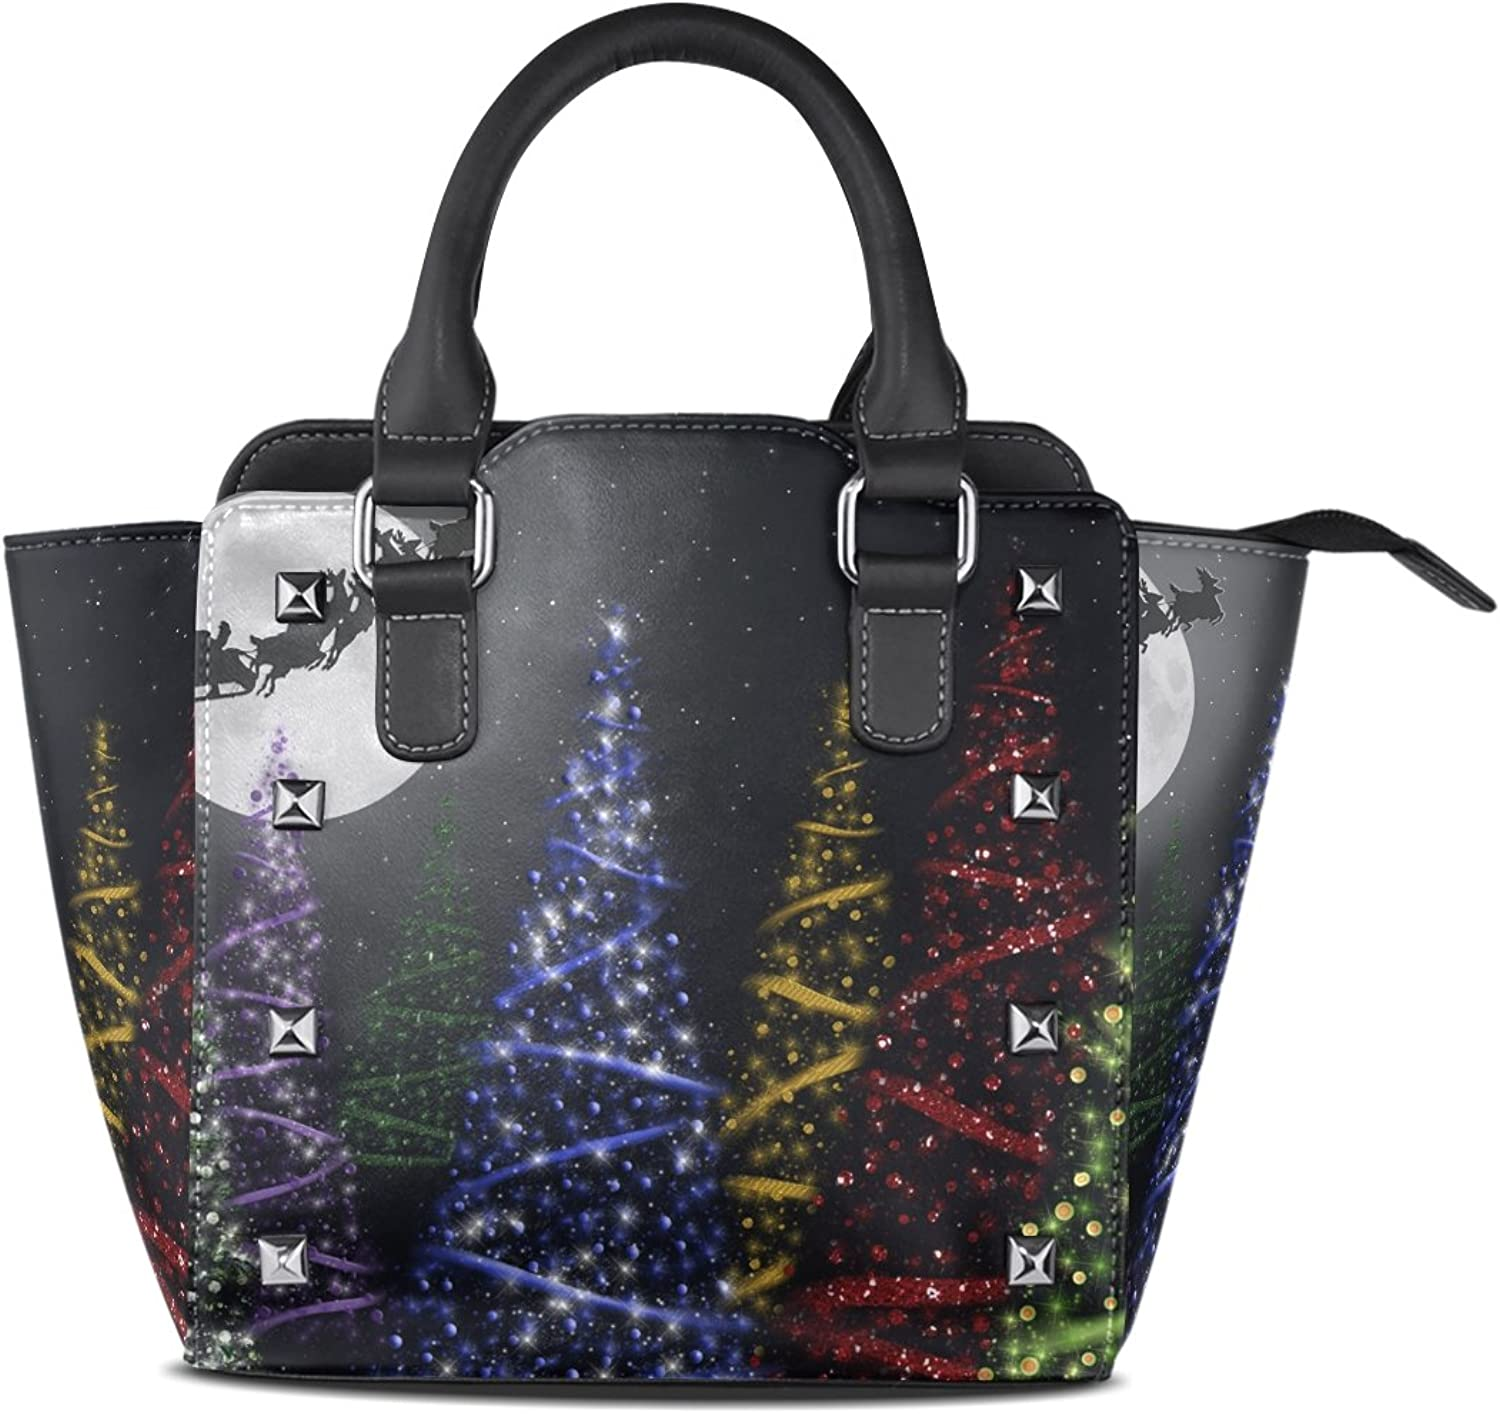 Sunlome colorful Christmas Trees in The Moonight Print Handbags Women's PU Leather Top-Handle Shoulder Bags